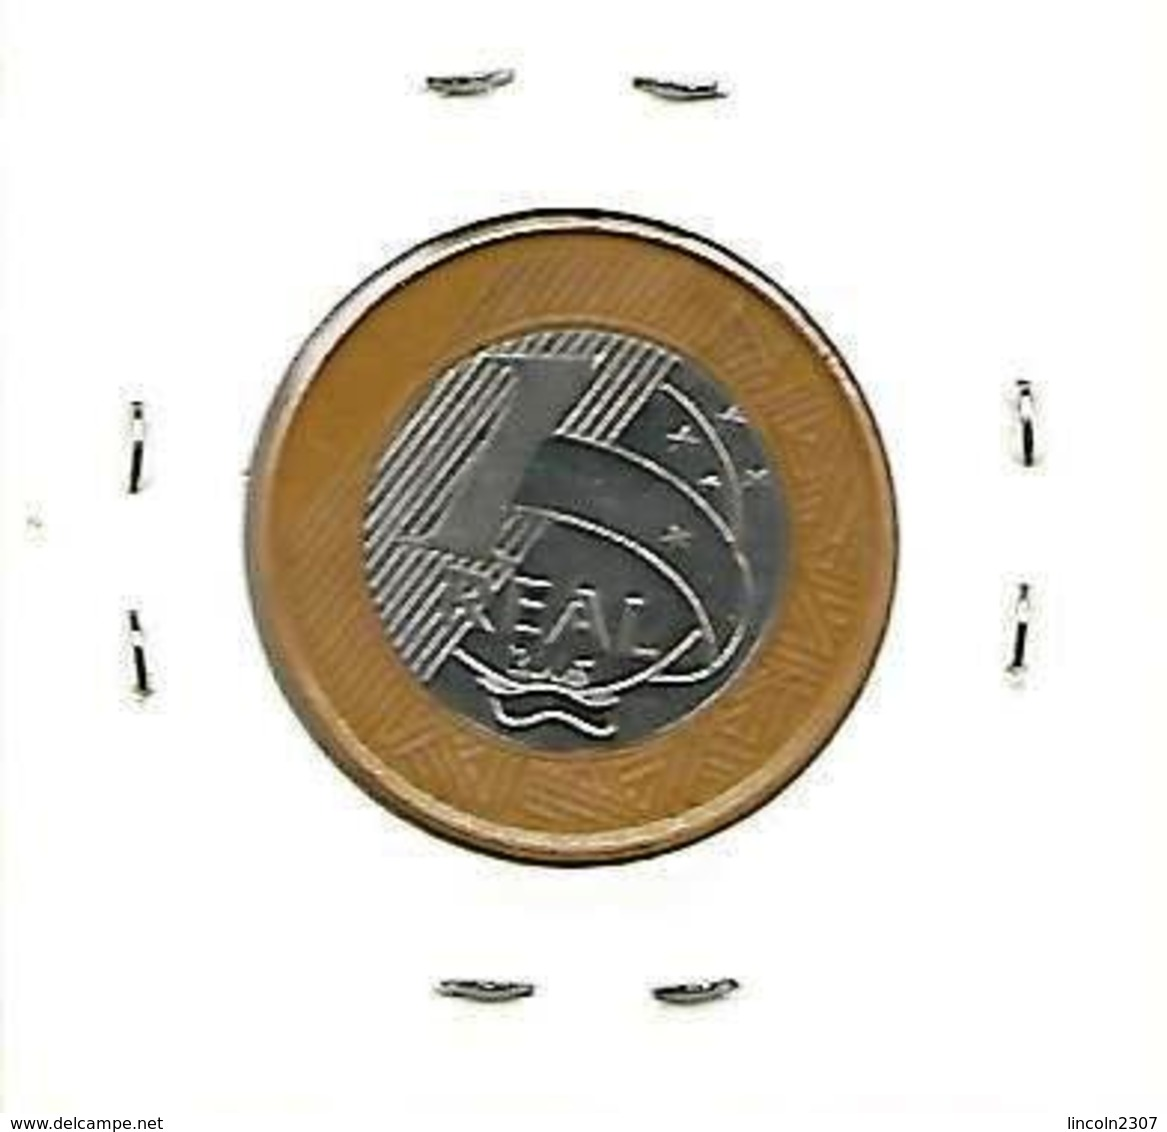 BRAZIL 1 REAL - 40 YEARS OF THE CENTRAL BANK COMMEMORATIVE COIN - 2005 - Brazil